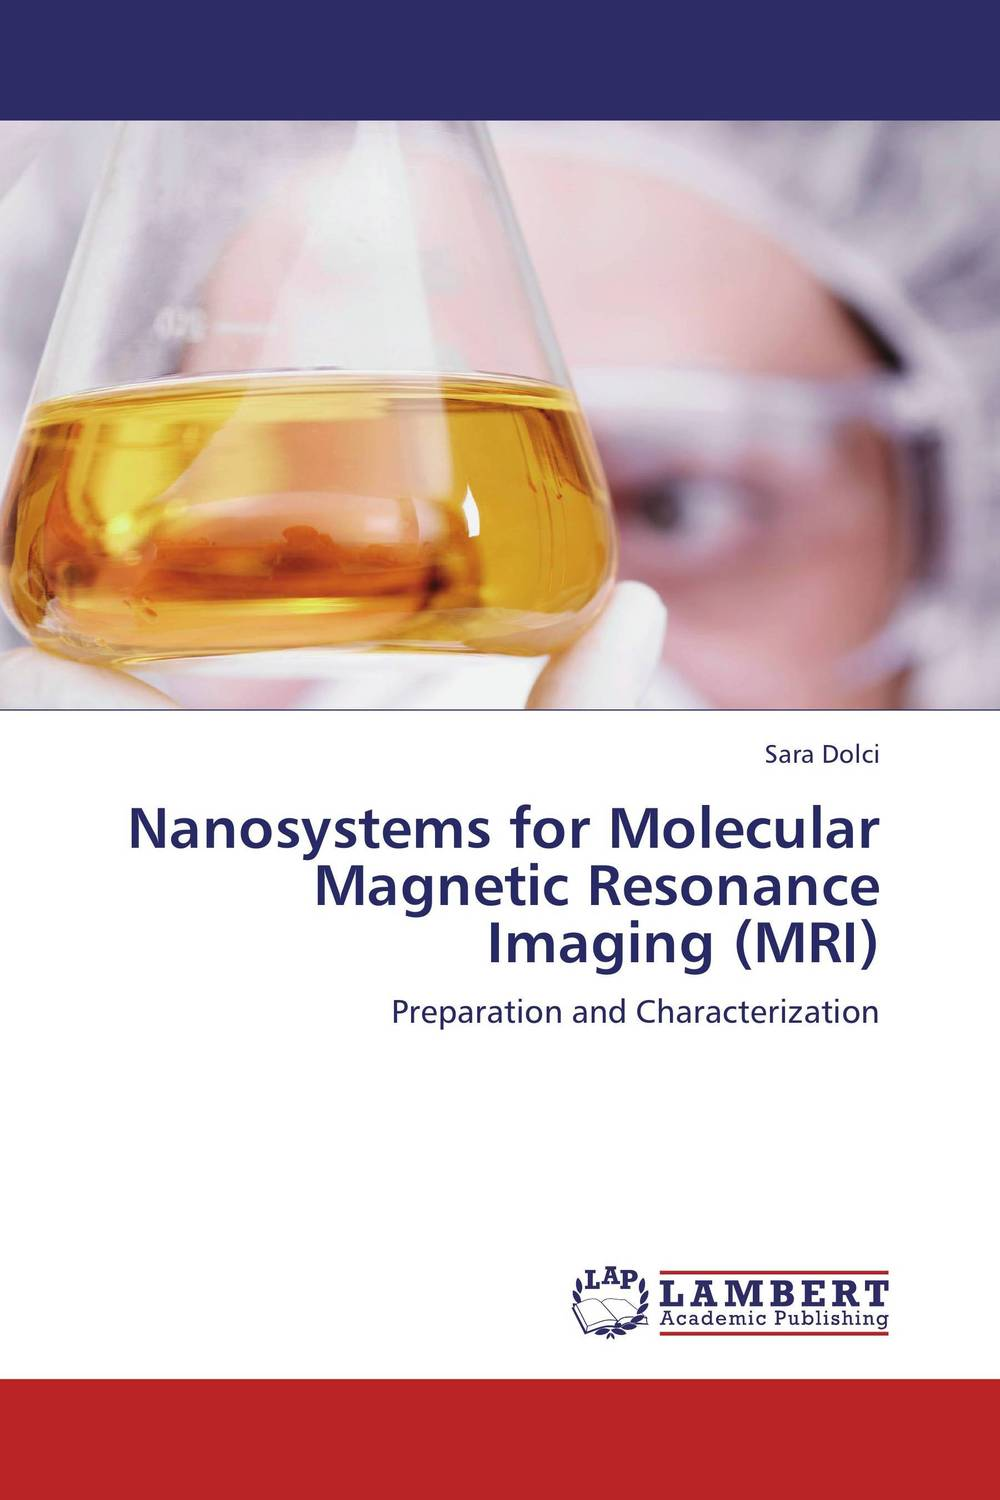 Nanosystems for Molecular Magnetic Resonance Imaging (MRI) muhammad haris afzal use of earth s magnetic field for pedestrian navigation